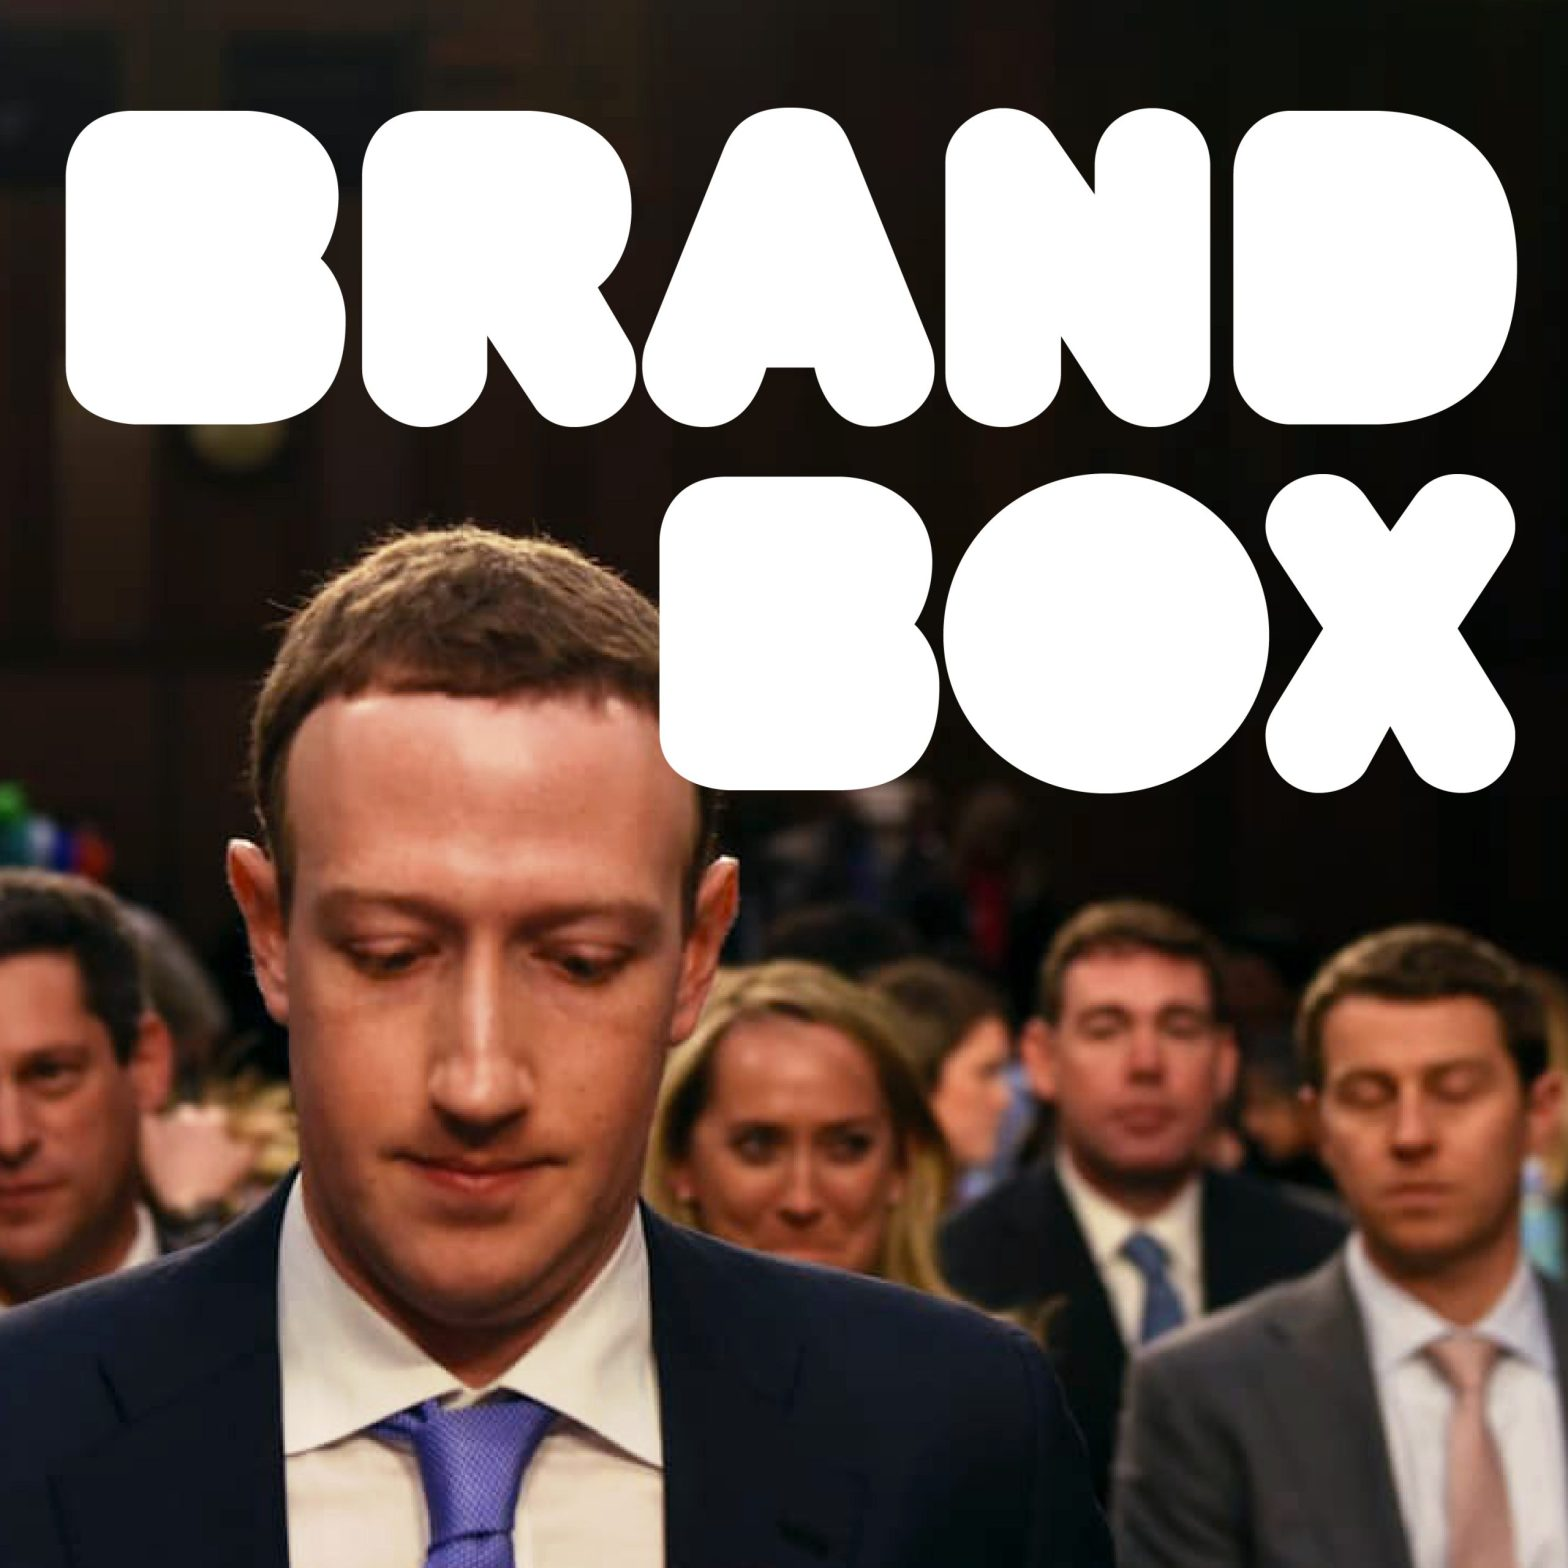 Thumbnail for BrandBox: A Philosophical, Design-Infused Dialogue About Meritocracy